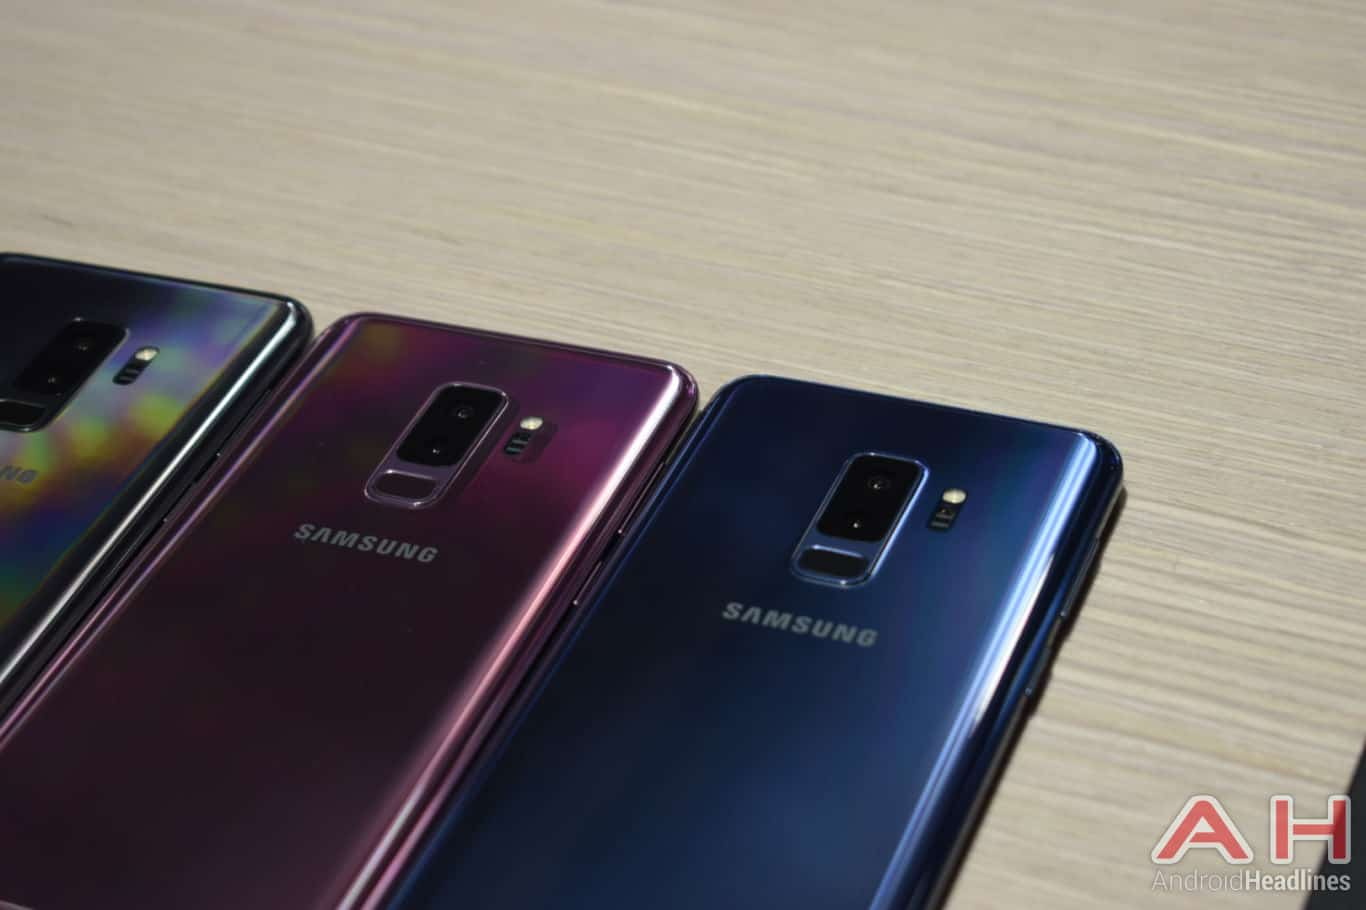 sprint confirms march 16 galaxy s9 galaxy s9 plus launch. Black Bedroom Furniture Sets. Home Design Ideas